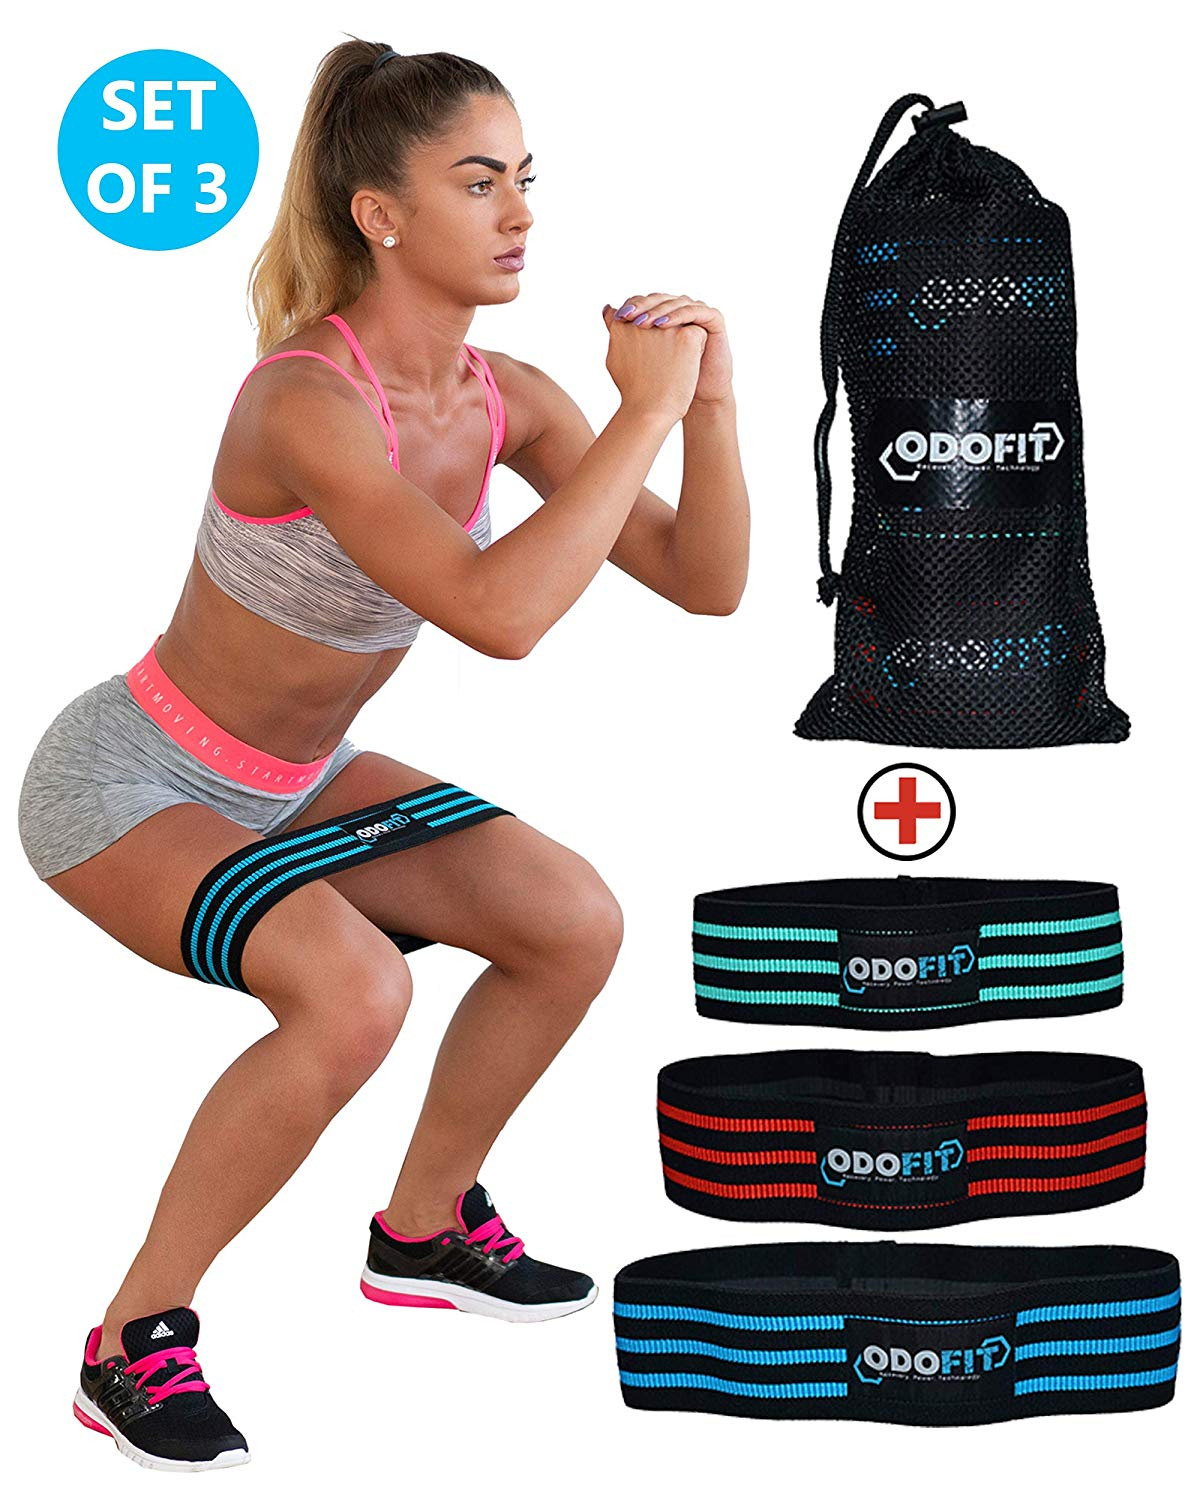 Squat Set of 3 Perfect for Stretching or Snap Won't Slip Warm Up ...